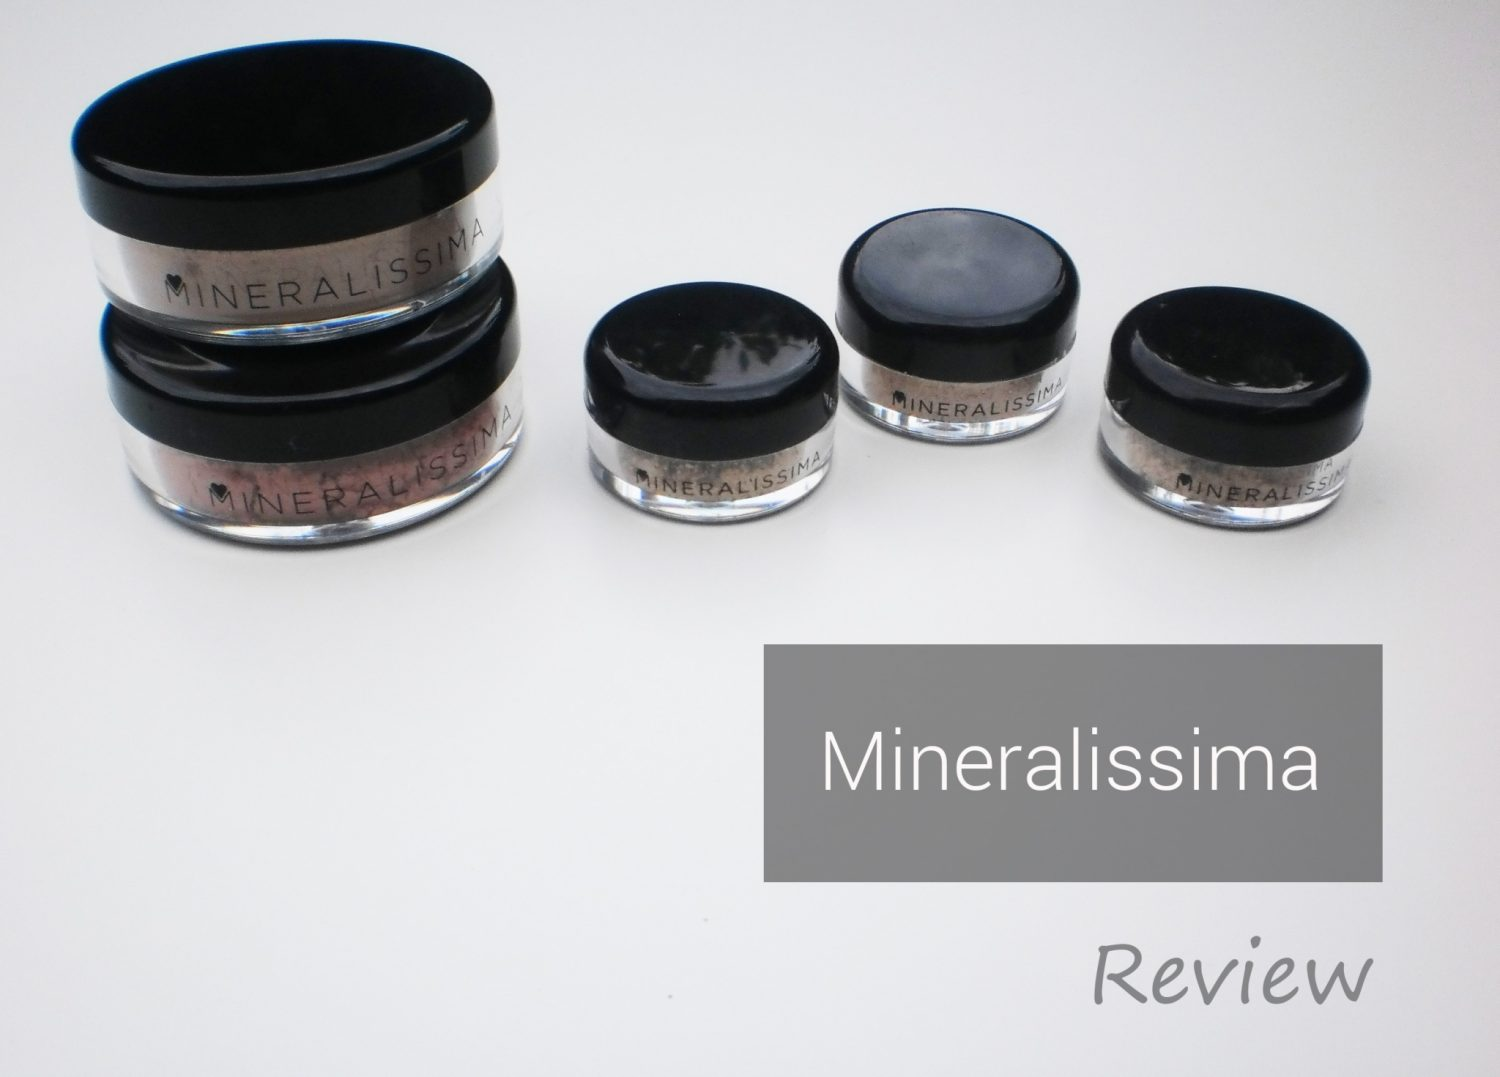 Review: Mineralissima Make-Up